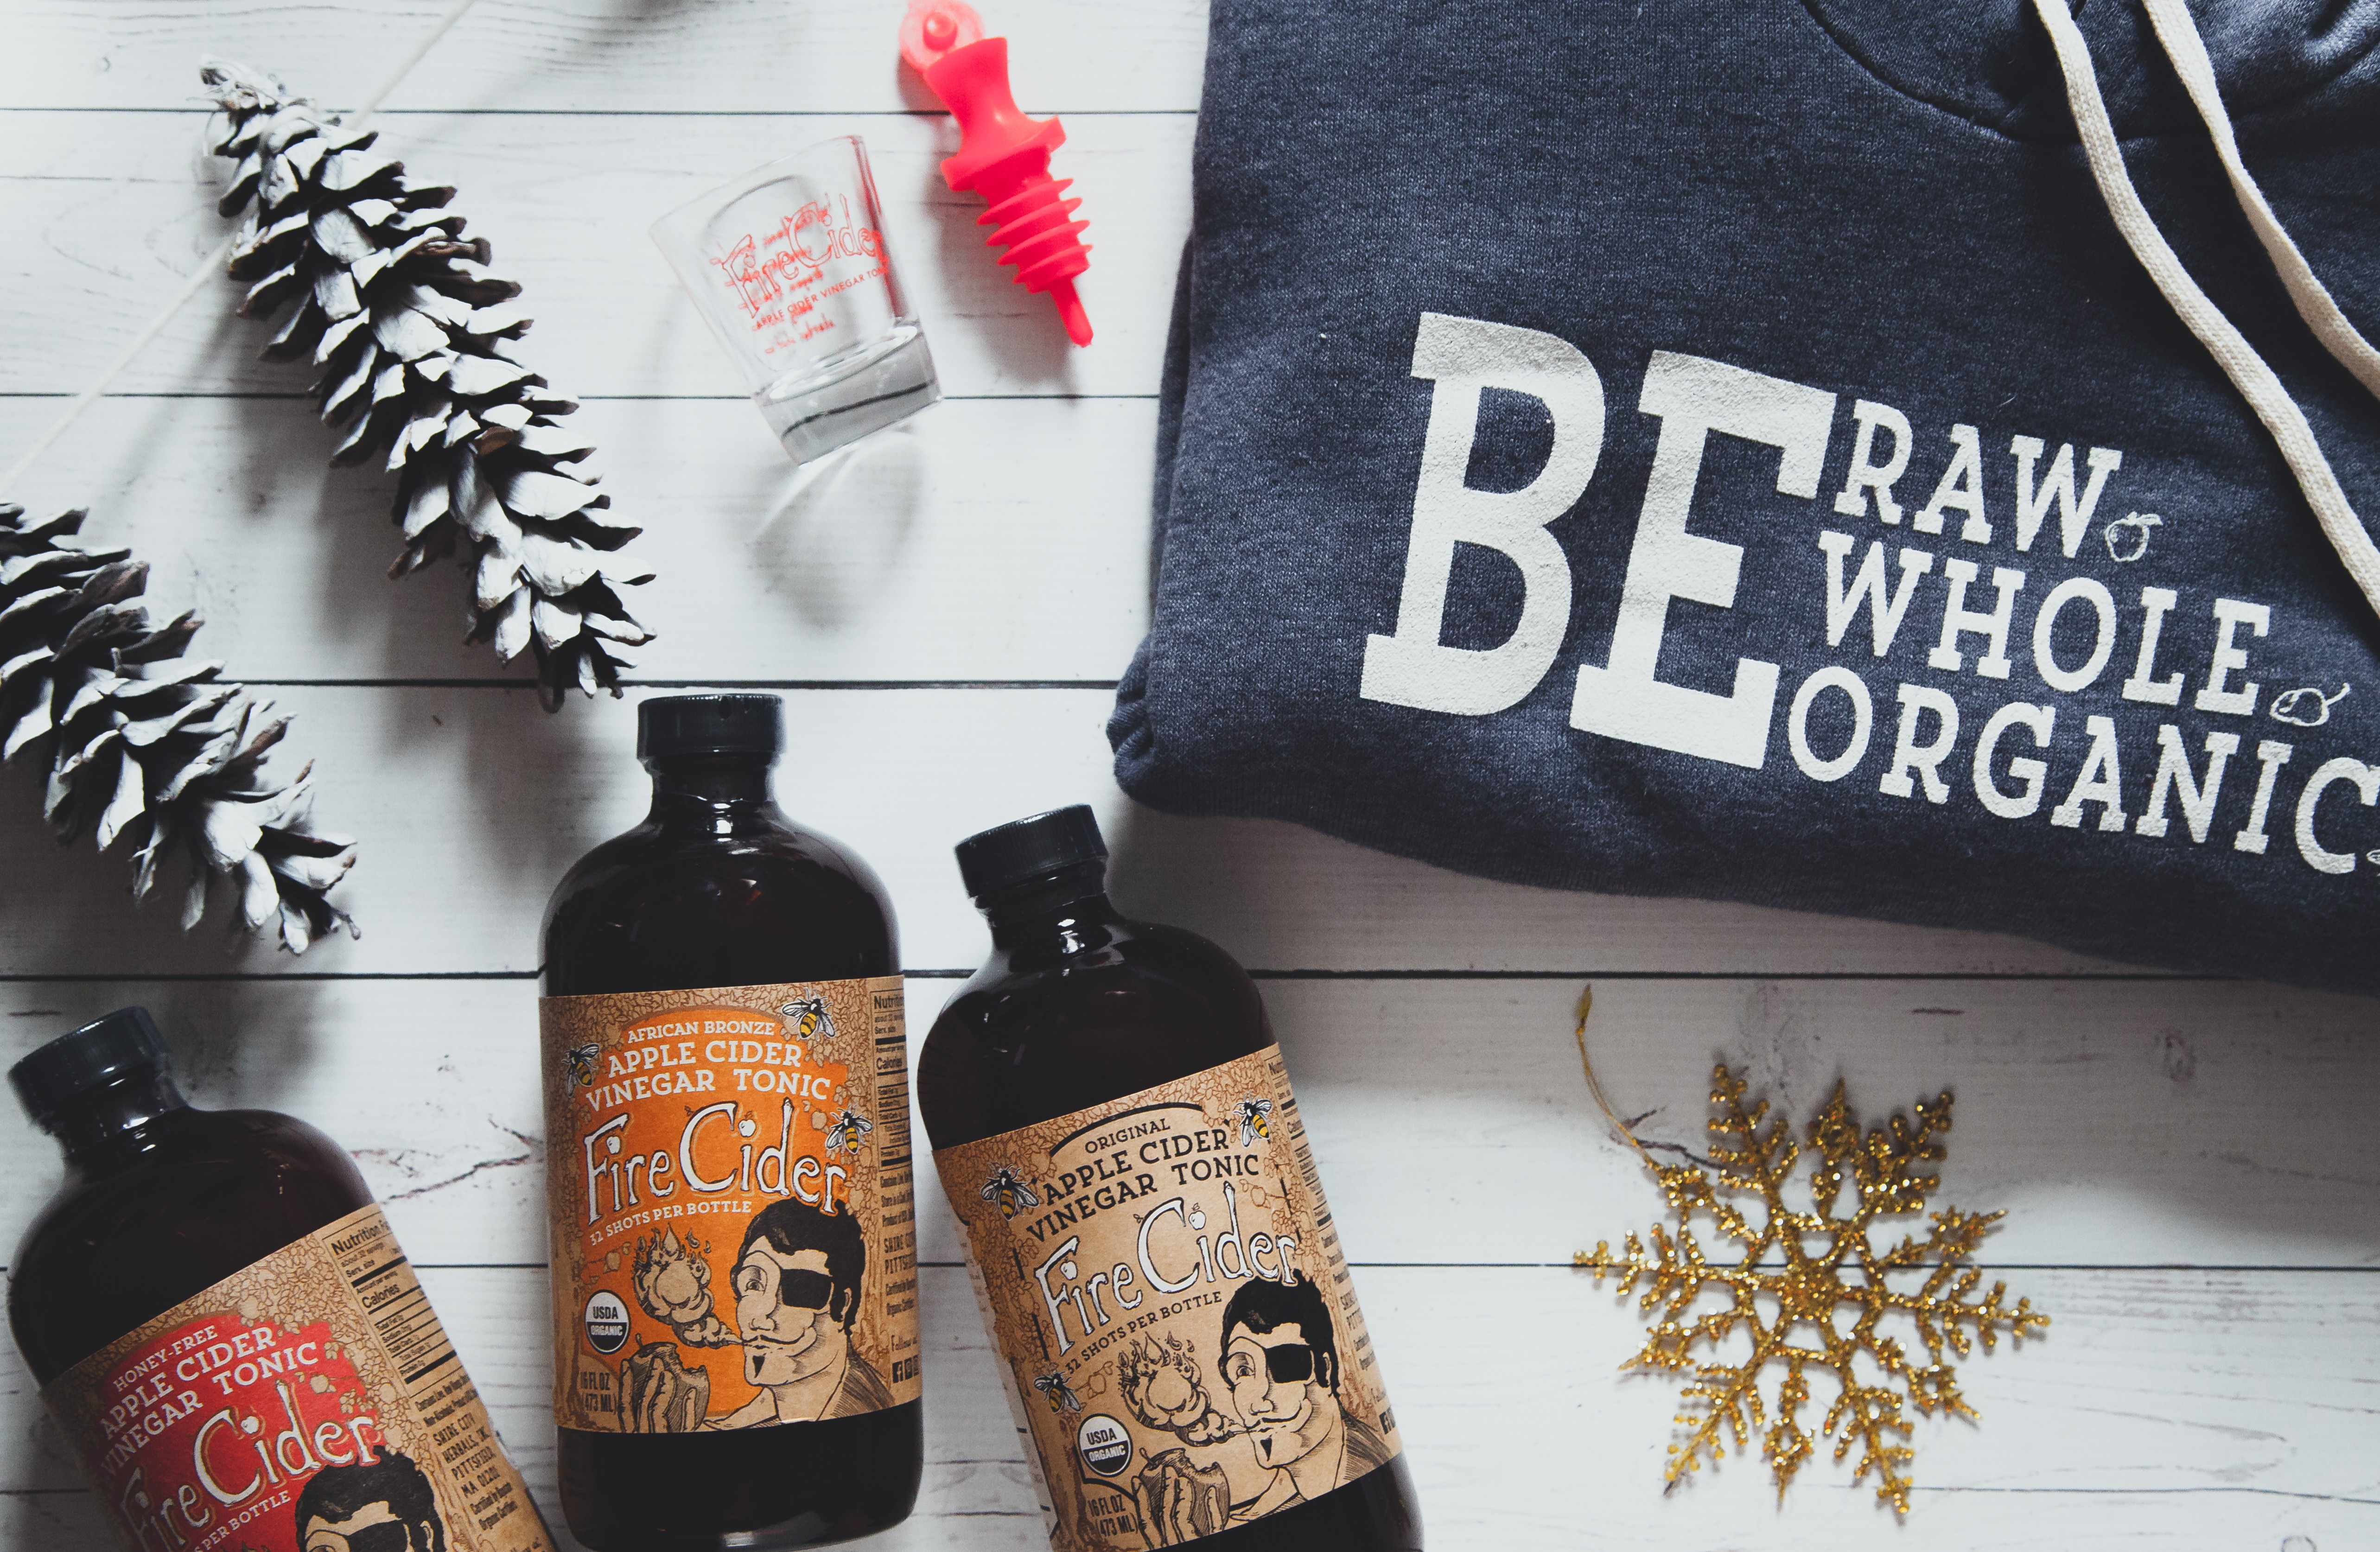 From bottles to gift bundles, you can find holiday gifts whatever your budget!